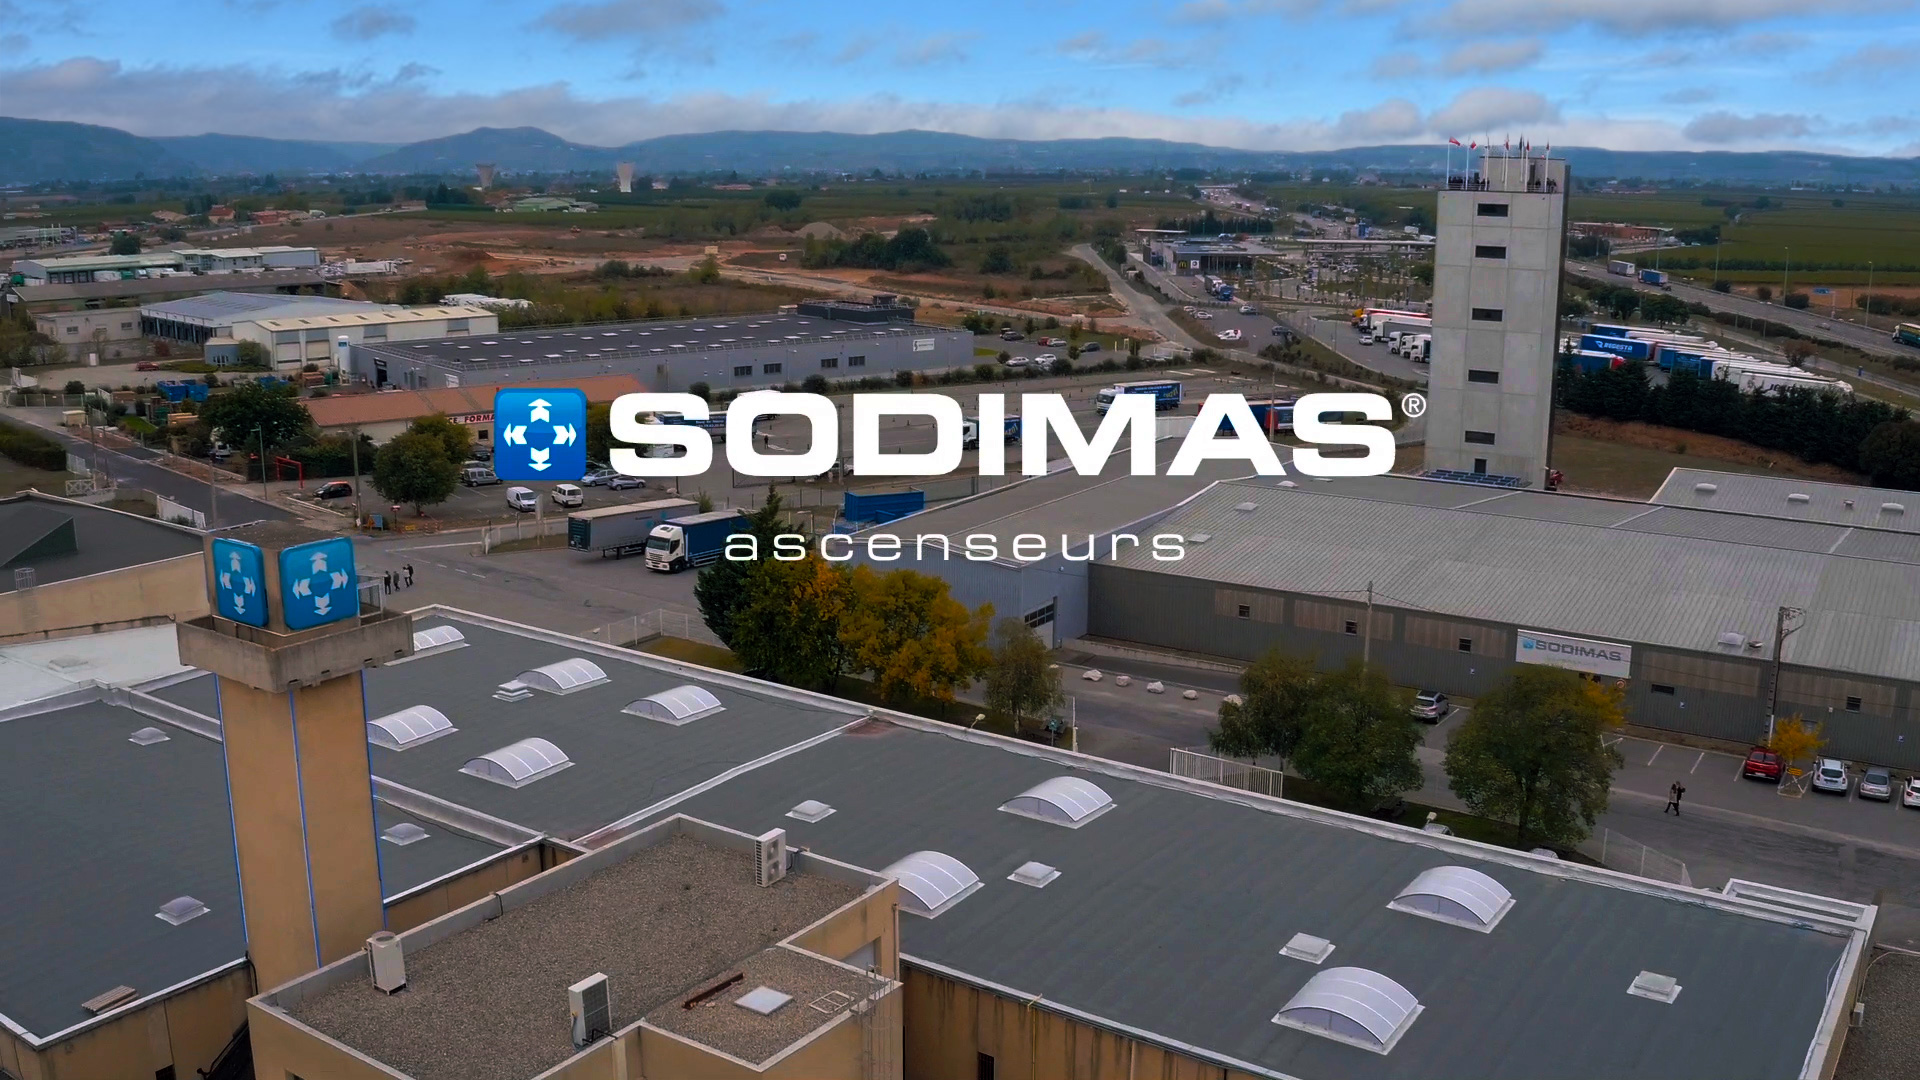 Sodimas panoramique